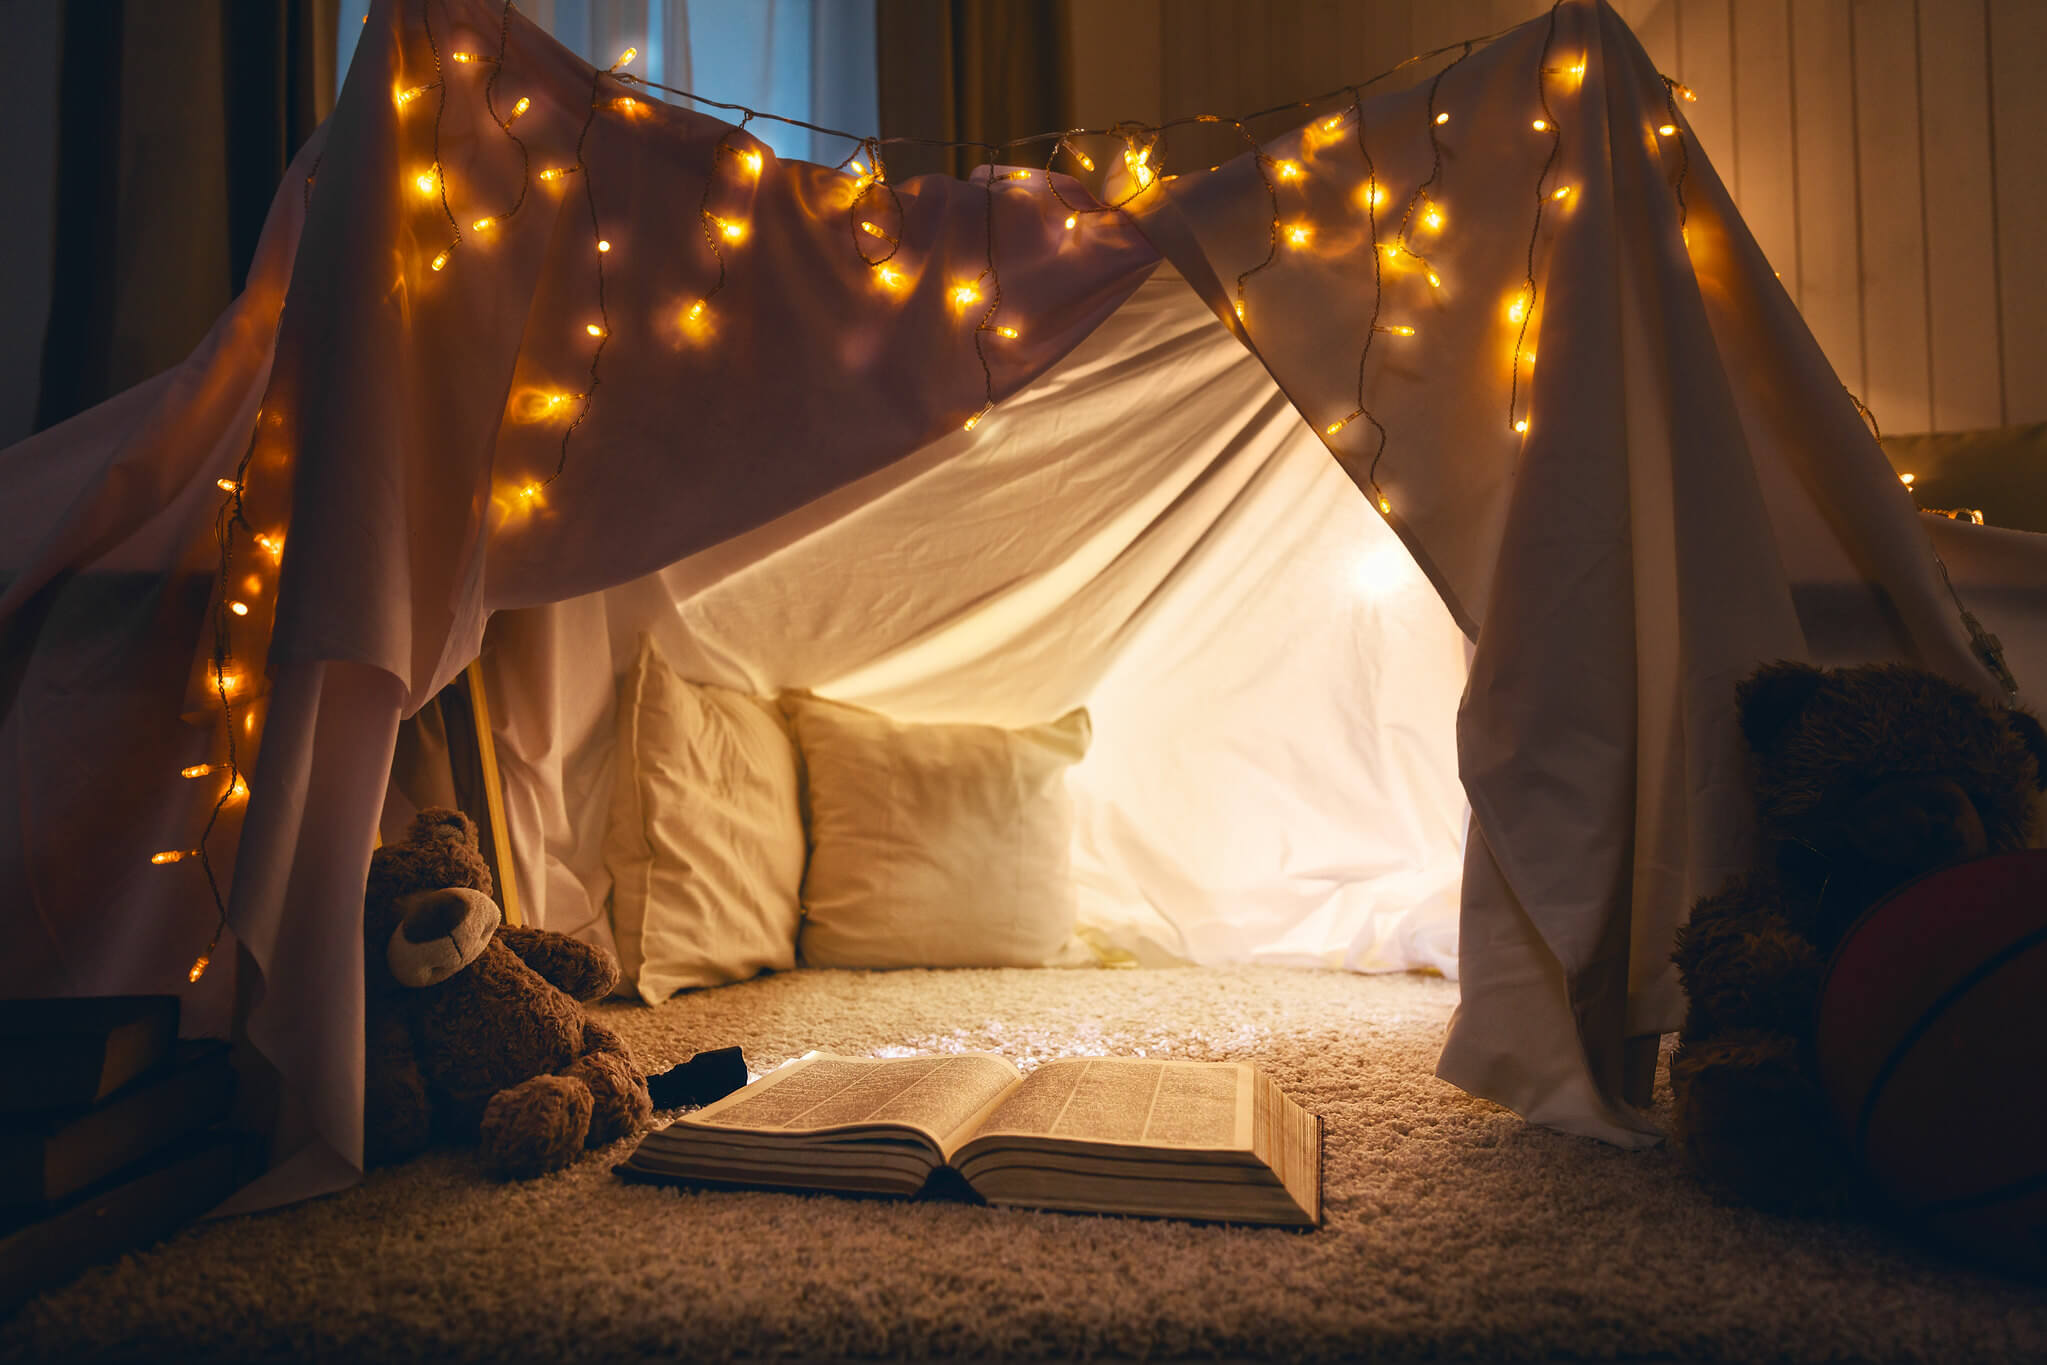 Set up a reading den in your living room, complete with fairy lights and cosy blankets.